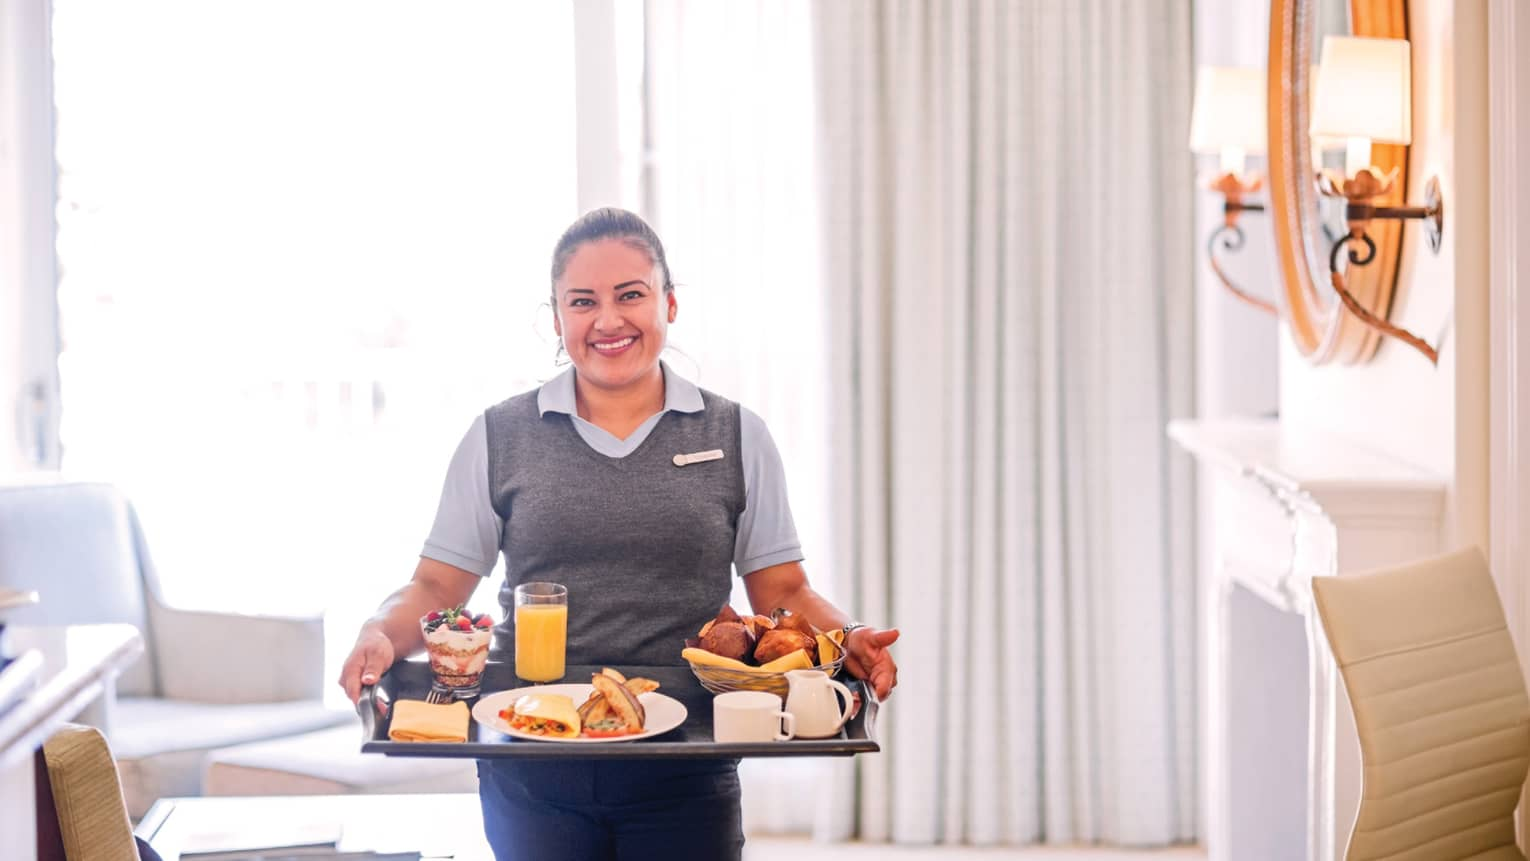 Smiling server carries in-room breakfast tray in elegant white hotel room